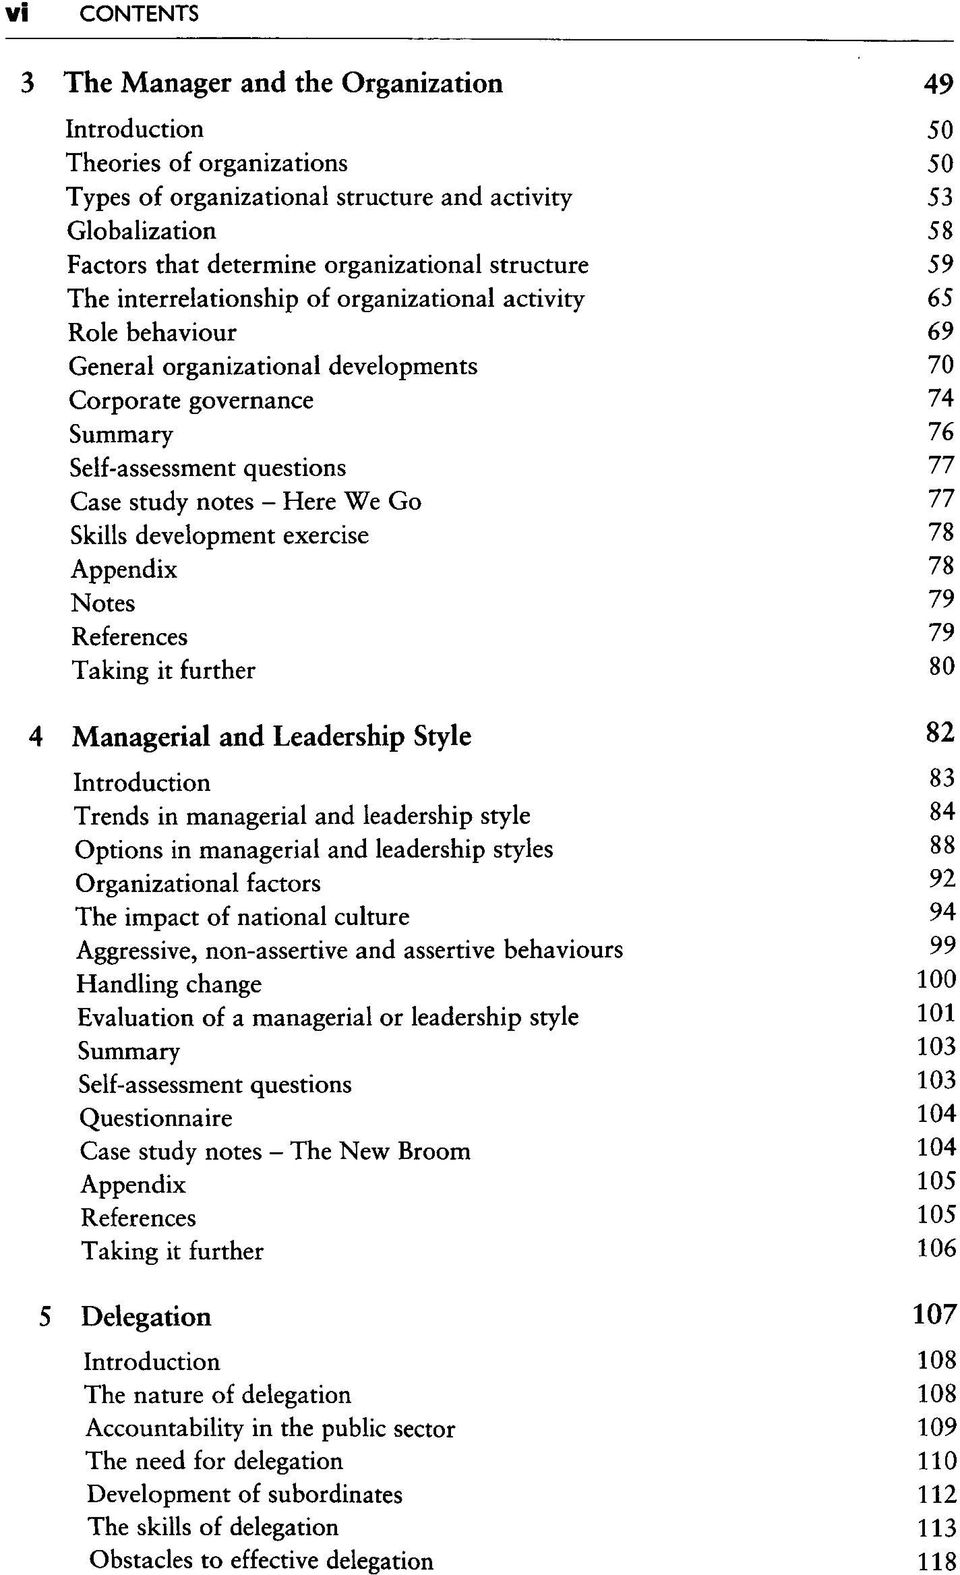 notes - Here We Go 77 Skills development exercise 78 Appendix 78 Notes 79 References 79 Taking it further 80 4 Managerial and Leadership Style 82 Introduction 83 Trends in managerial and leadership